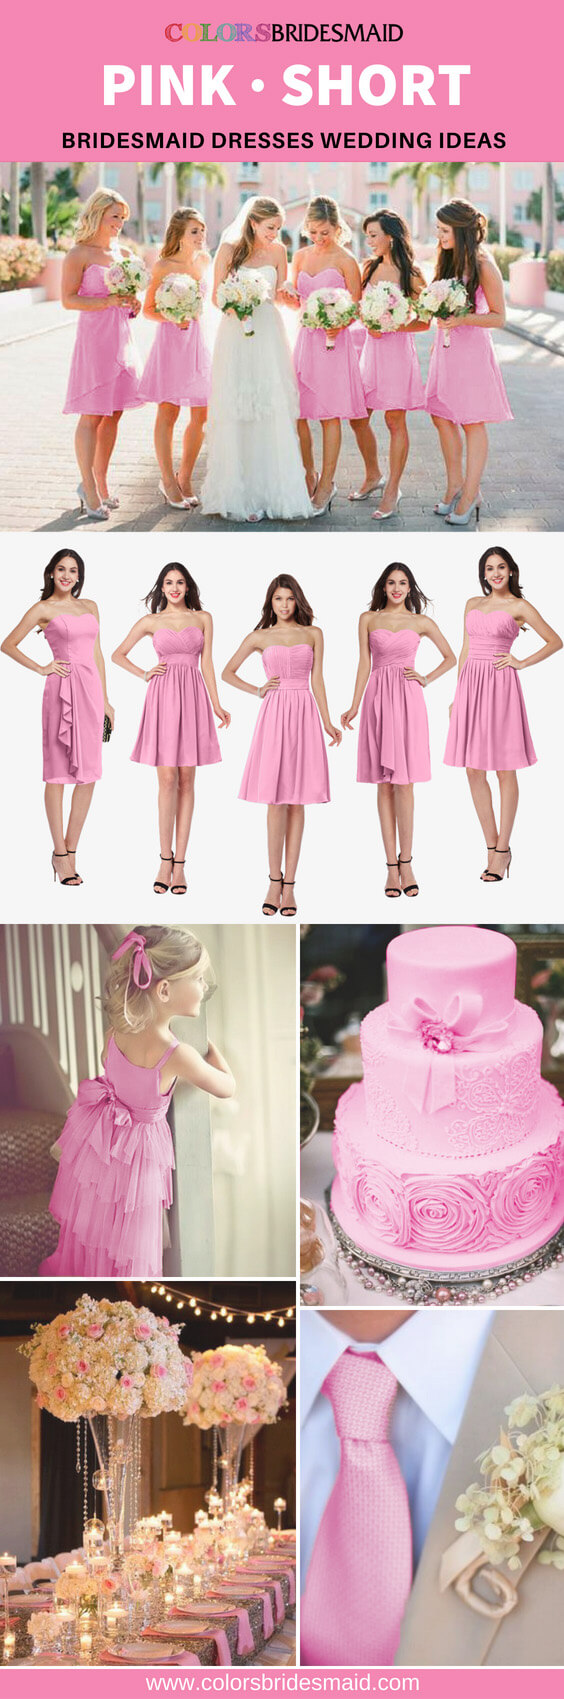 pink bridesmaid dresses short